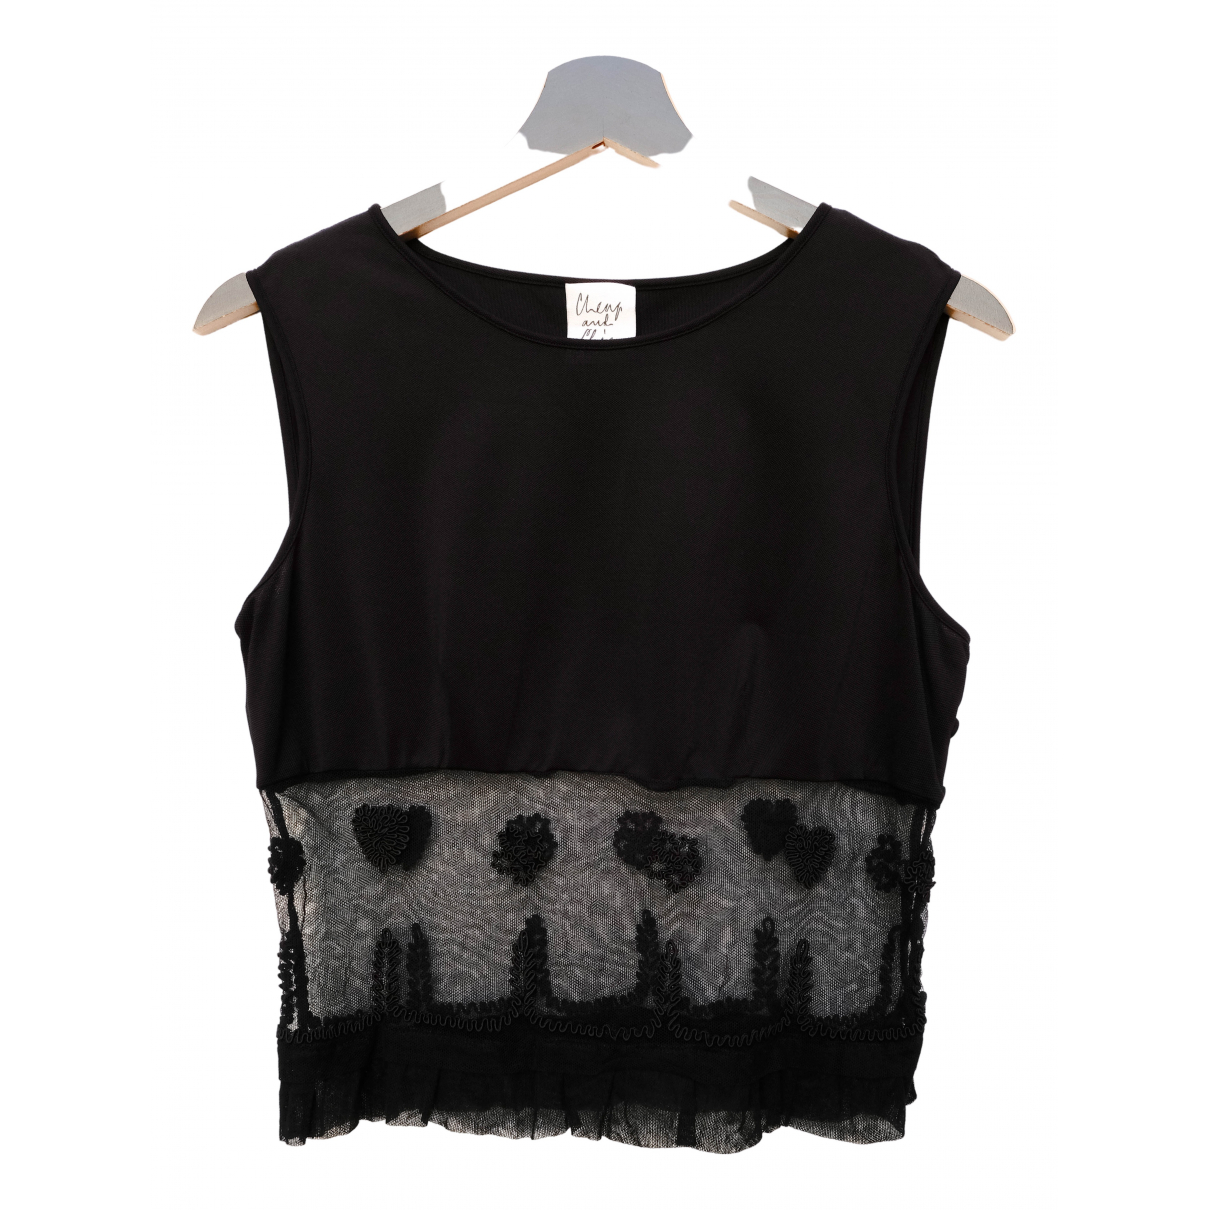 Moschino Cheap And Chic \N Black  top for Women M International